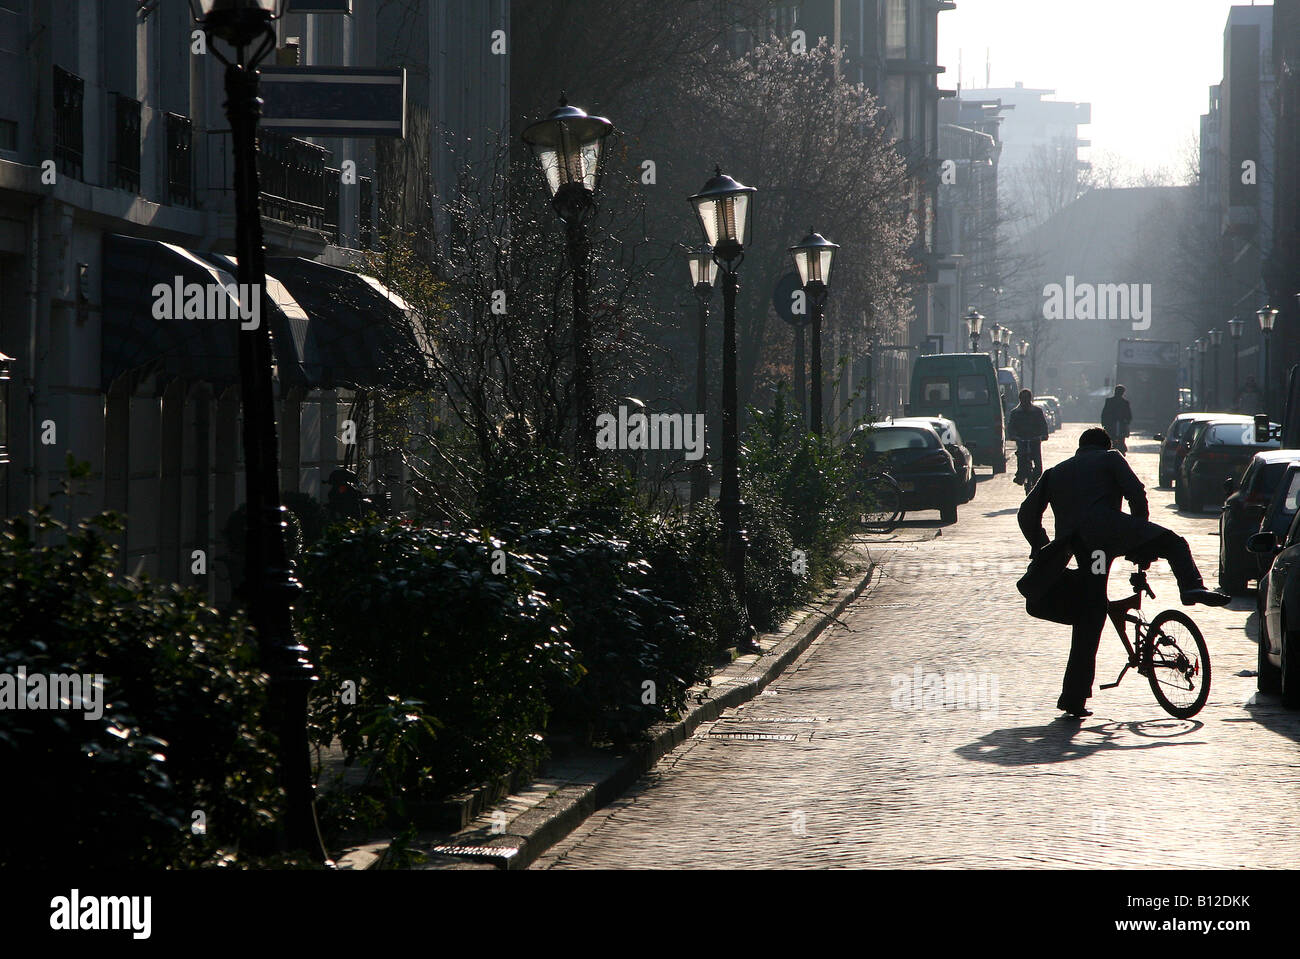 Man on a bicycle, in Amsterdam, The Netherlands, classic backlight image Stock Photo